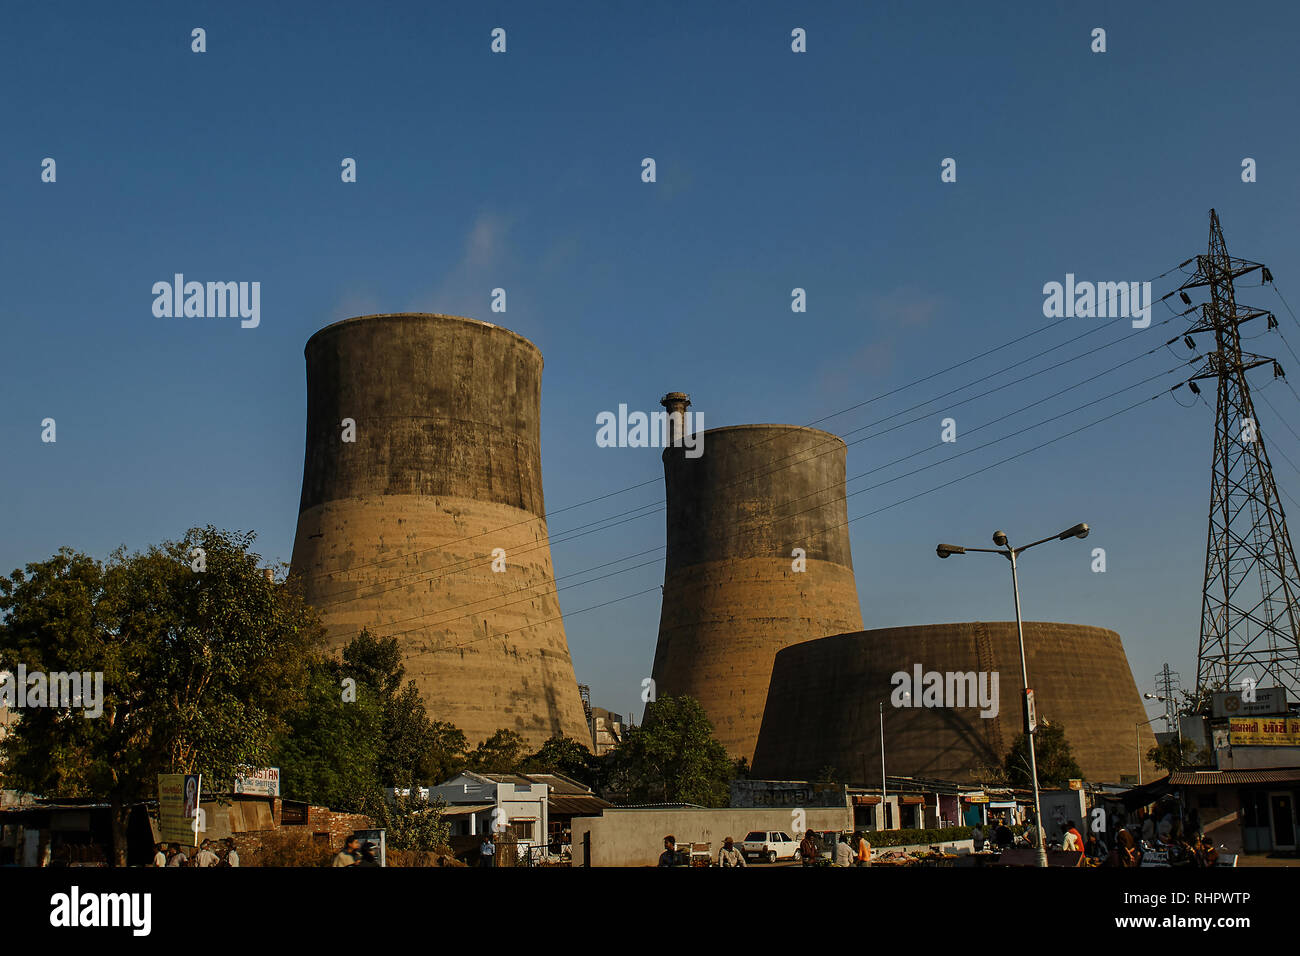 14-12- 2007 Energy-cooling  thermal power Station  Ahmedabad  Gujarat  India asia Stock Photo